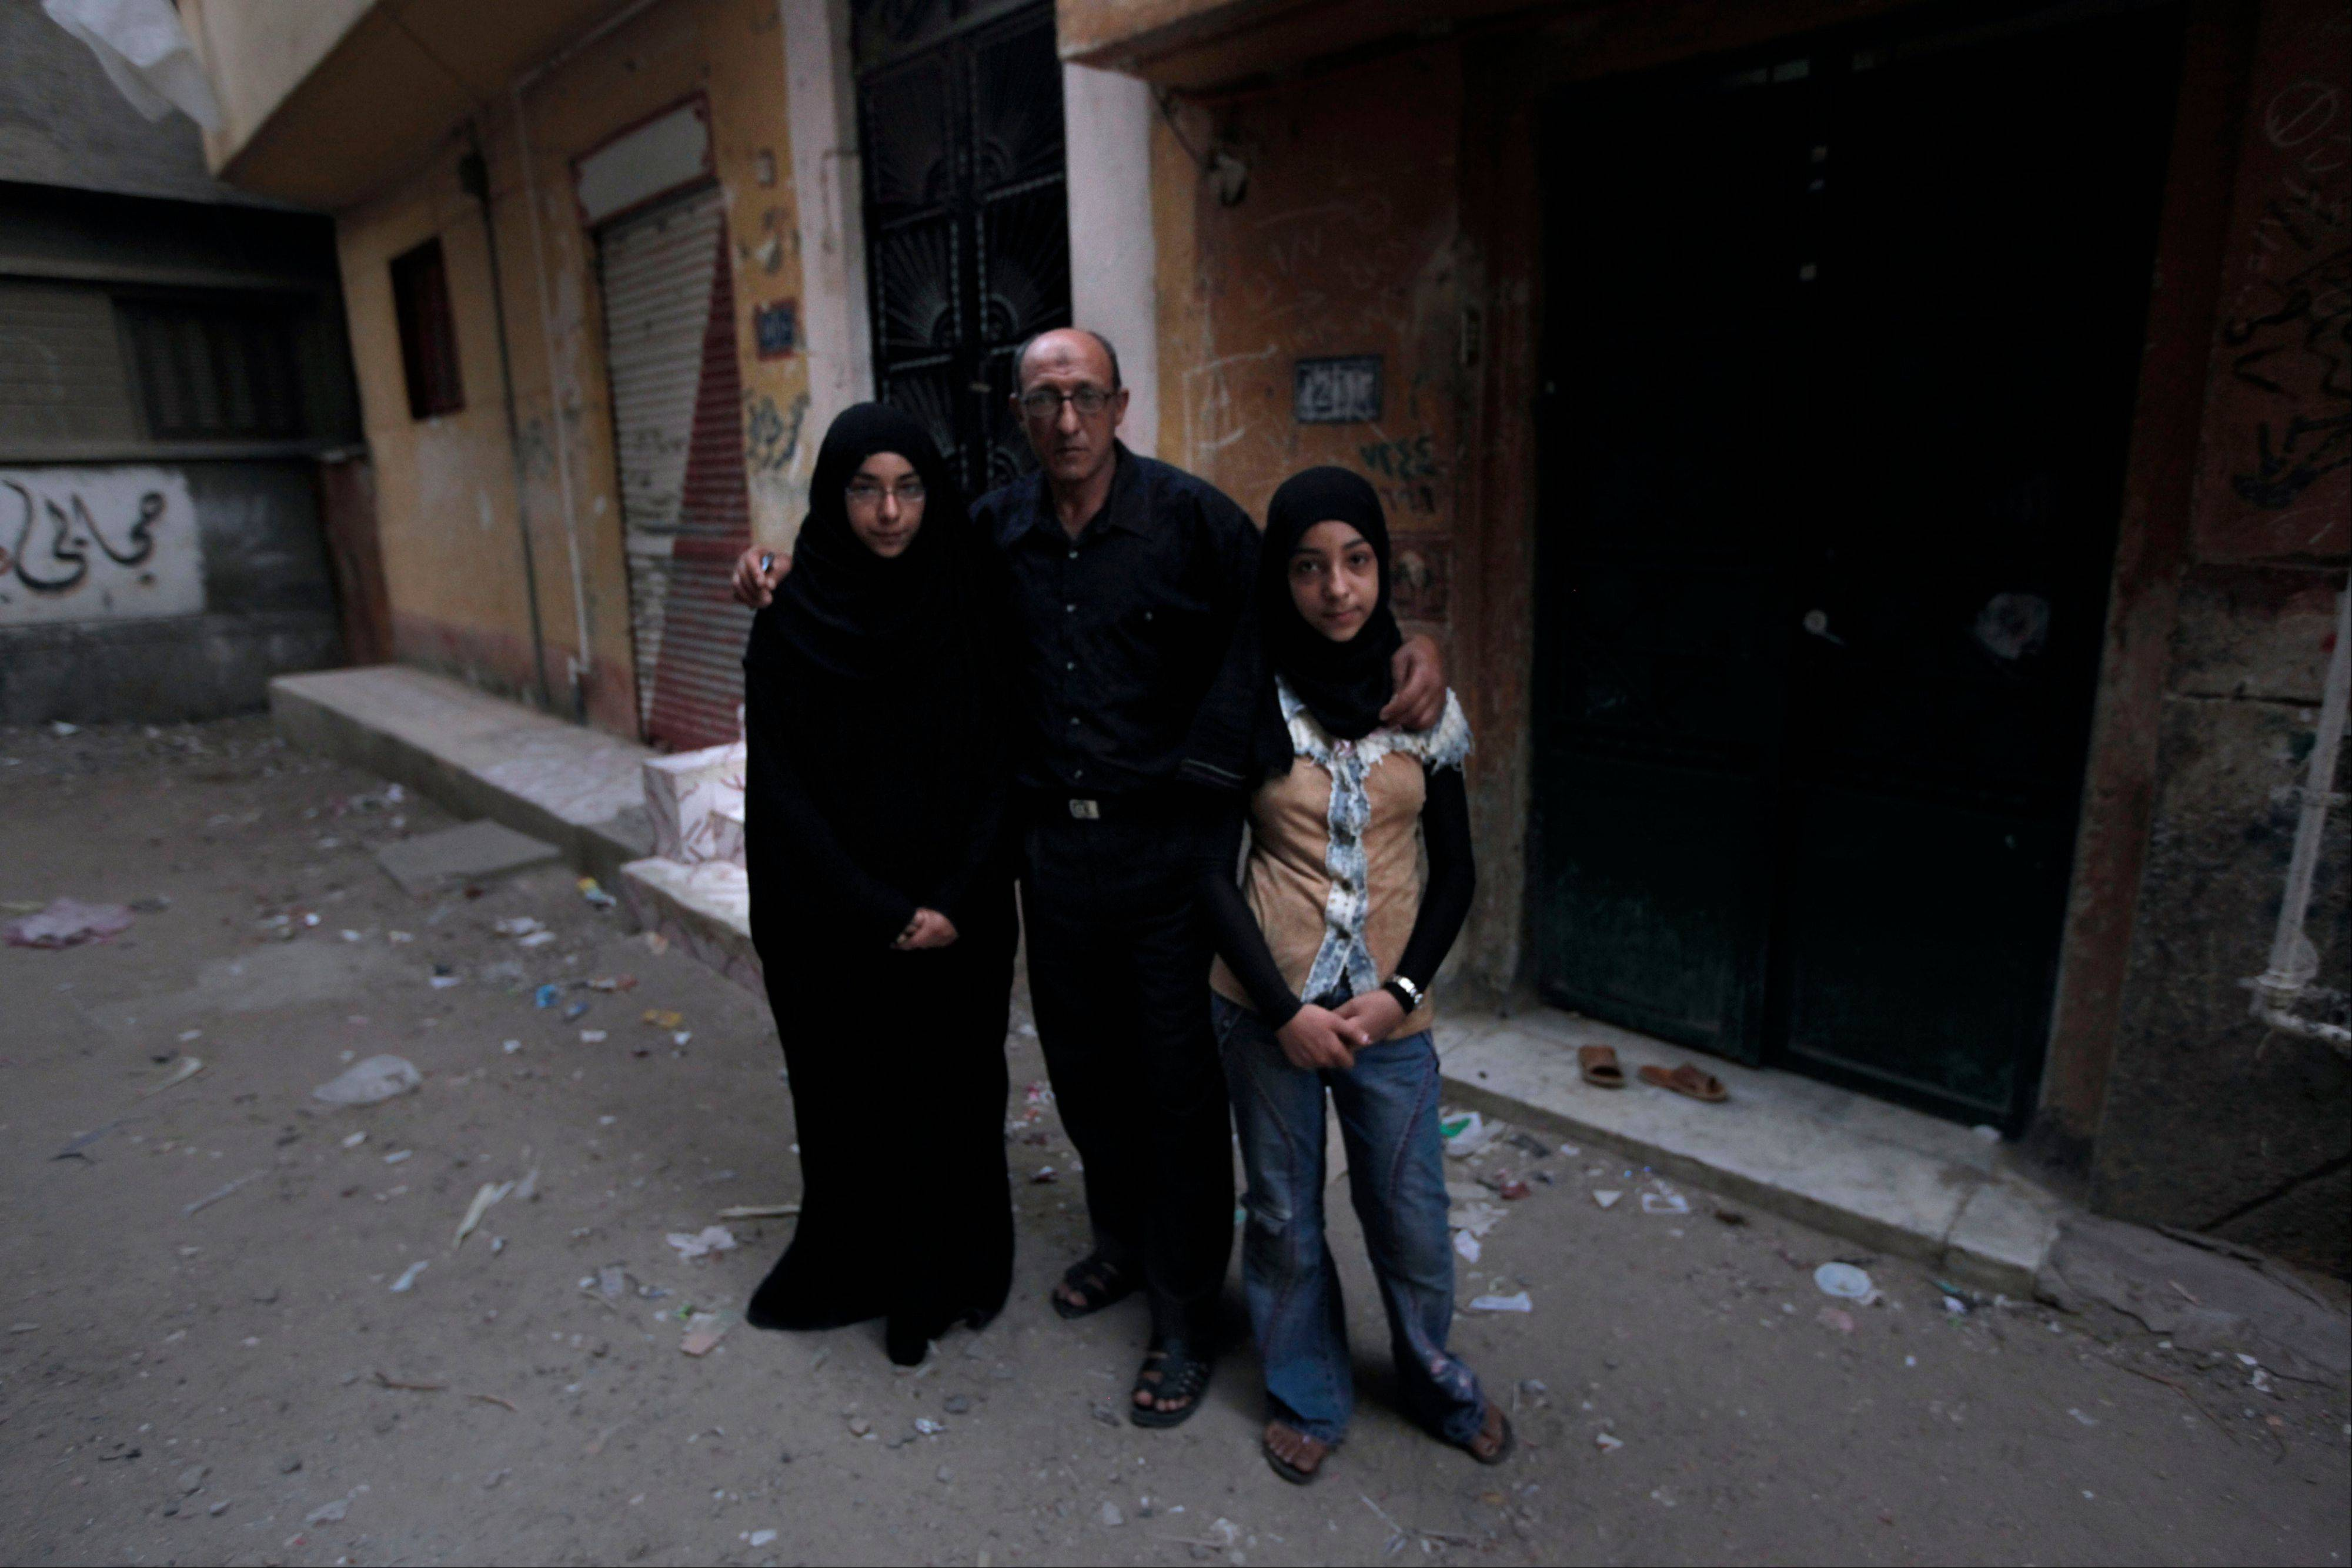 Family members of late Mariam Hawas, her daughters, Iman, 12, right, Fatmah, 16, left and her husband Bayoumi Abdel-Latif Bayoumi, center pose for a photo in front of the family house in Talkha, Mansoura, Egypt. Hawans lost her life trying to collect her monthly salary. Egyptians have long complained that the cheapest thing in this country is their lives. Under the former regime, wages in the public sector, the single largest employer, were miserably low and the already vast gap between rich and poor only widened.